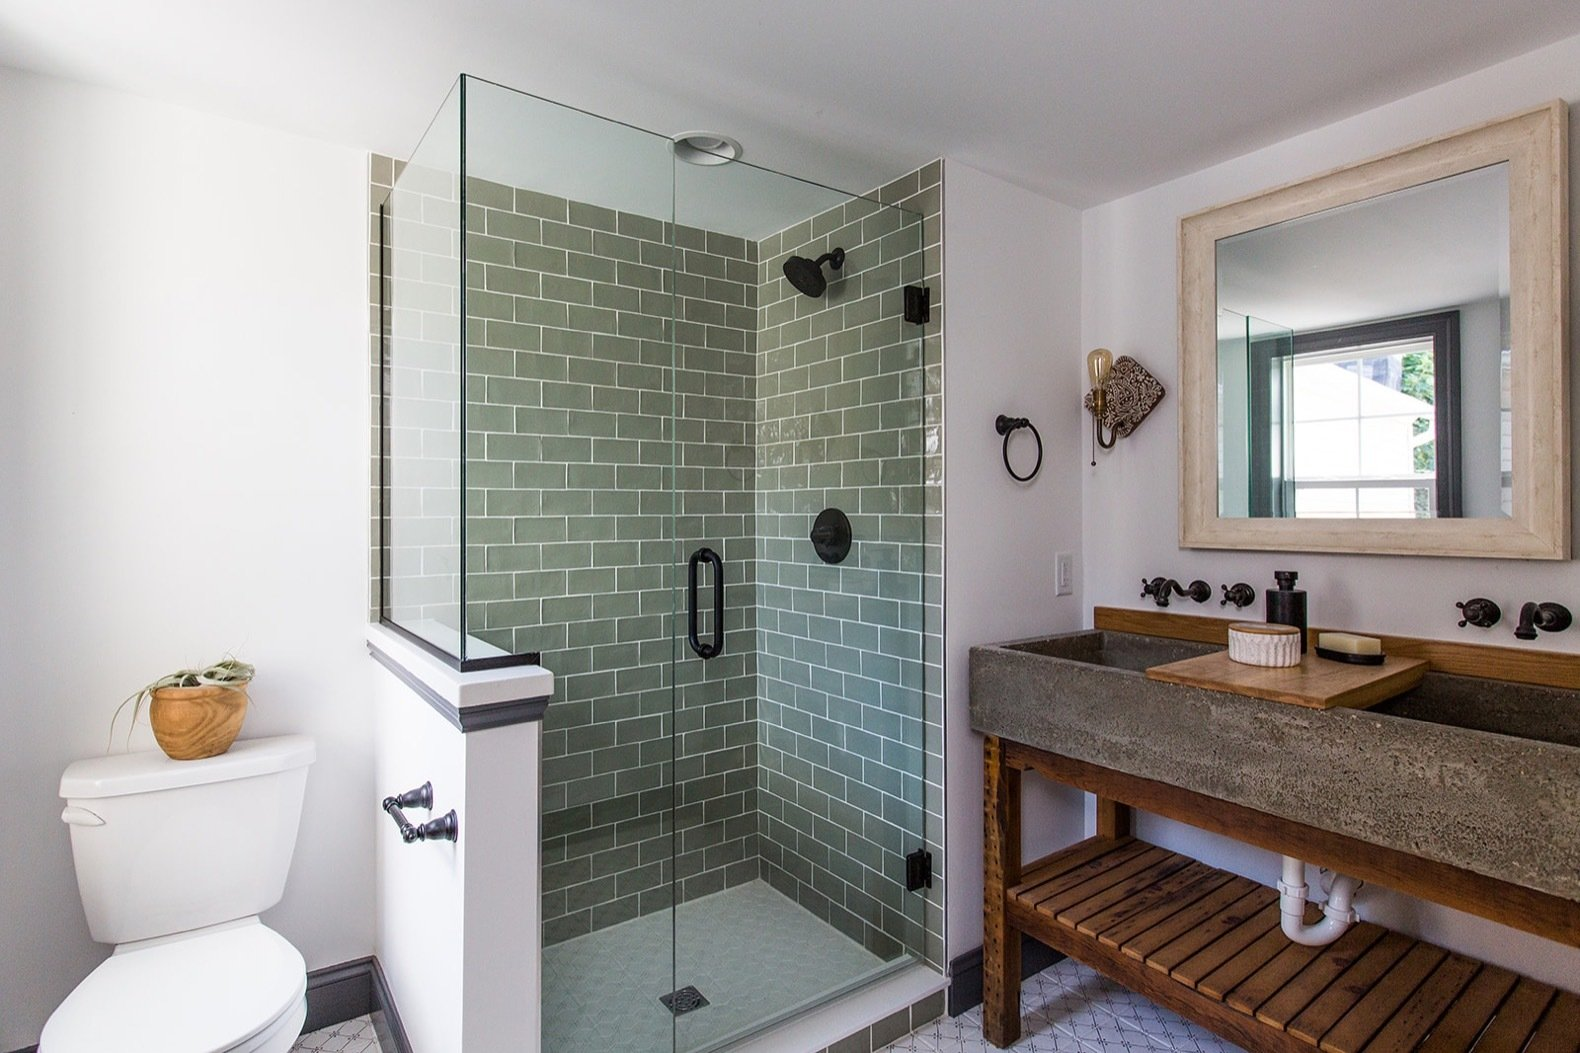 Bath, Two Piece, Ceramic Tile, Wood, Recessed, Wall, Vessel, Enclosed, and Wall Mount Sage-colored clay tiles line the shower stall in the master bath.     Best Bath Enclosed Wall Wall Mount Recessed Photos from Before & After: A Dark 1880s Row Home Gets an Airy Makeover